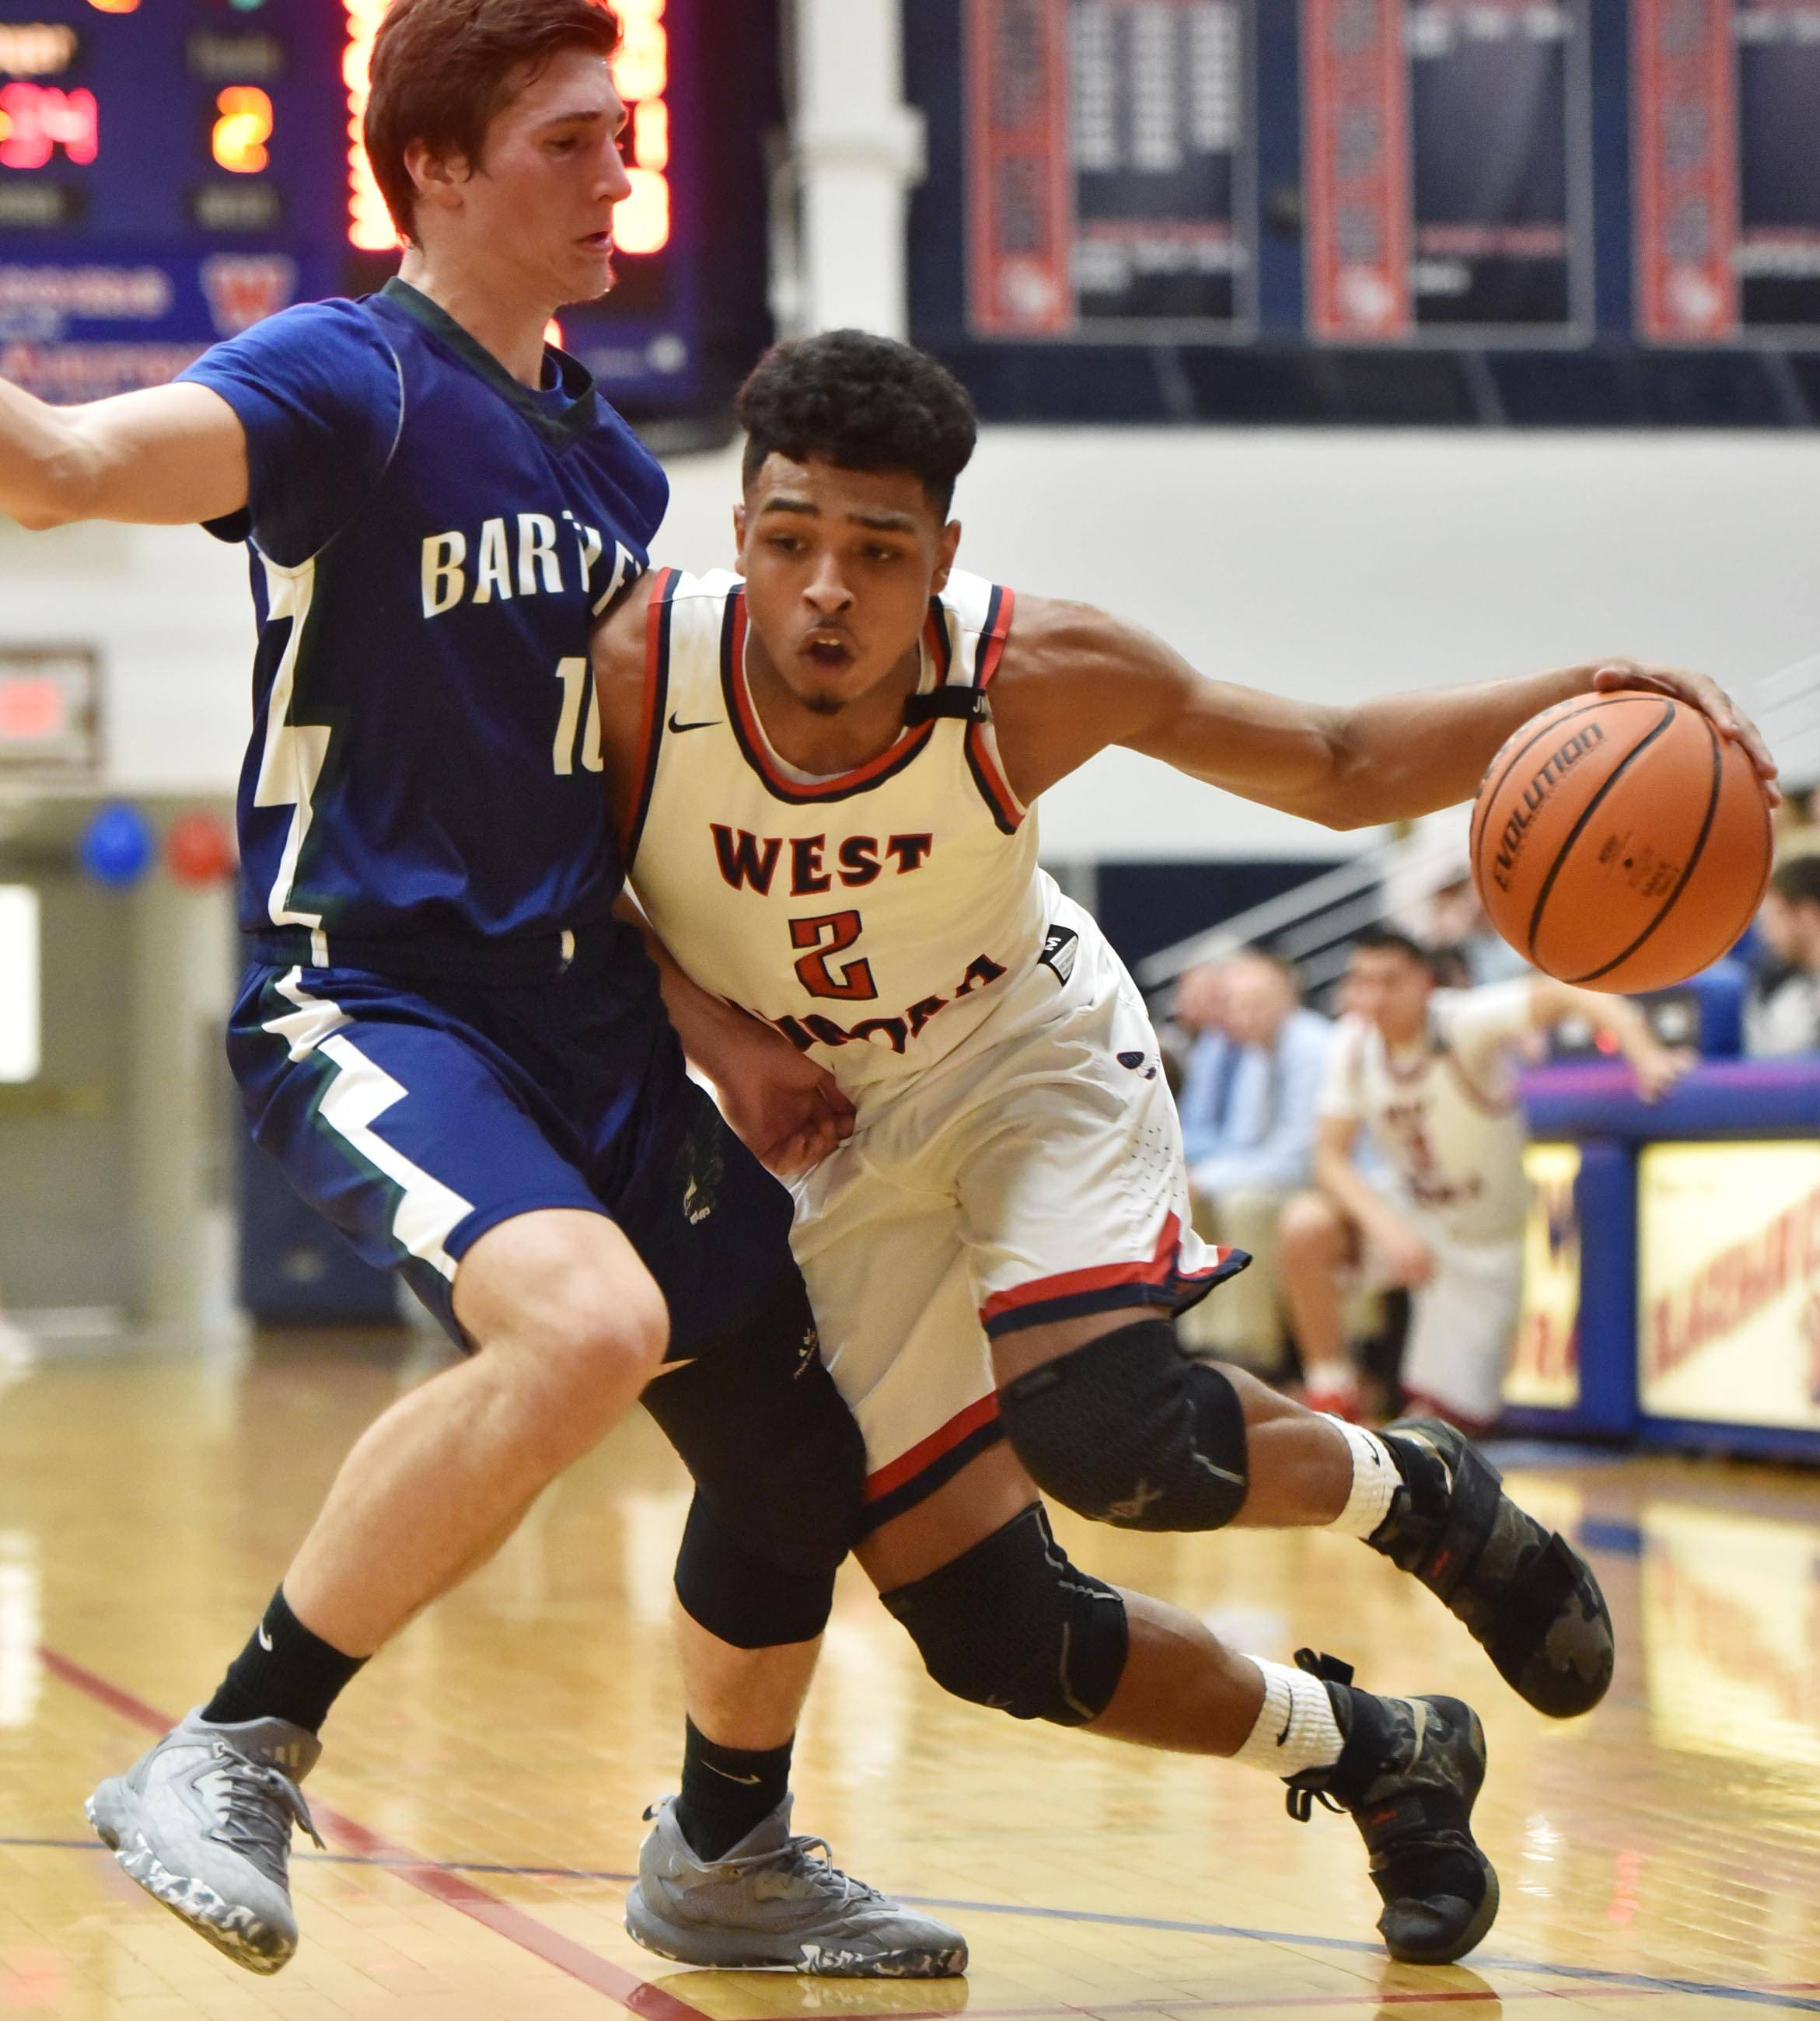 West Aurora's Camron Donatlan tries to drive around Bartlett's Tomas Vikonis Wednesday in Aurora.